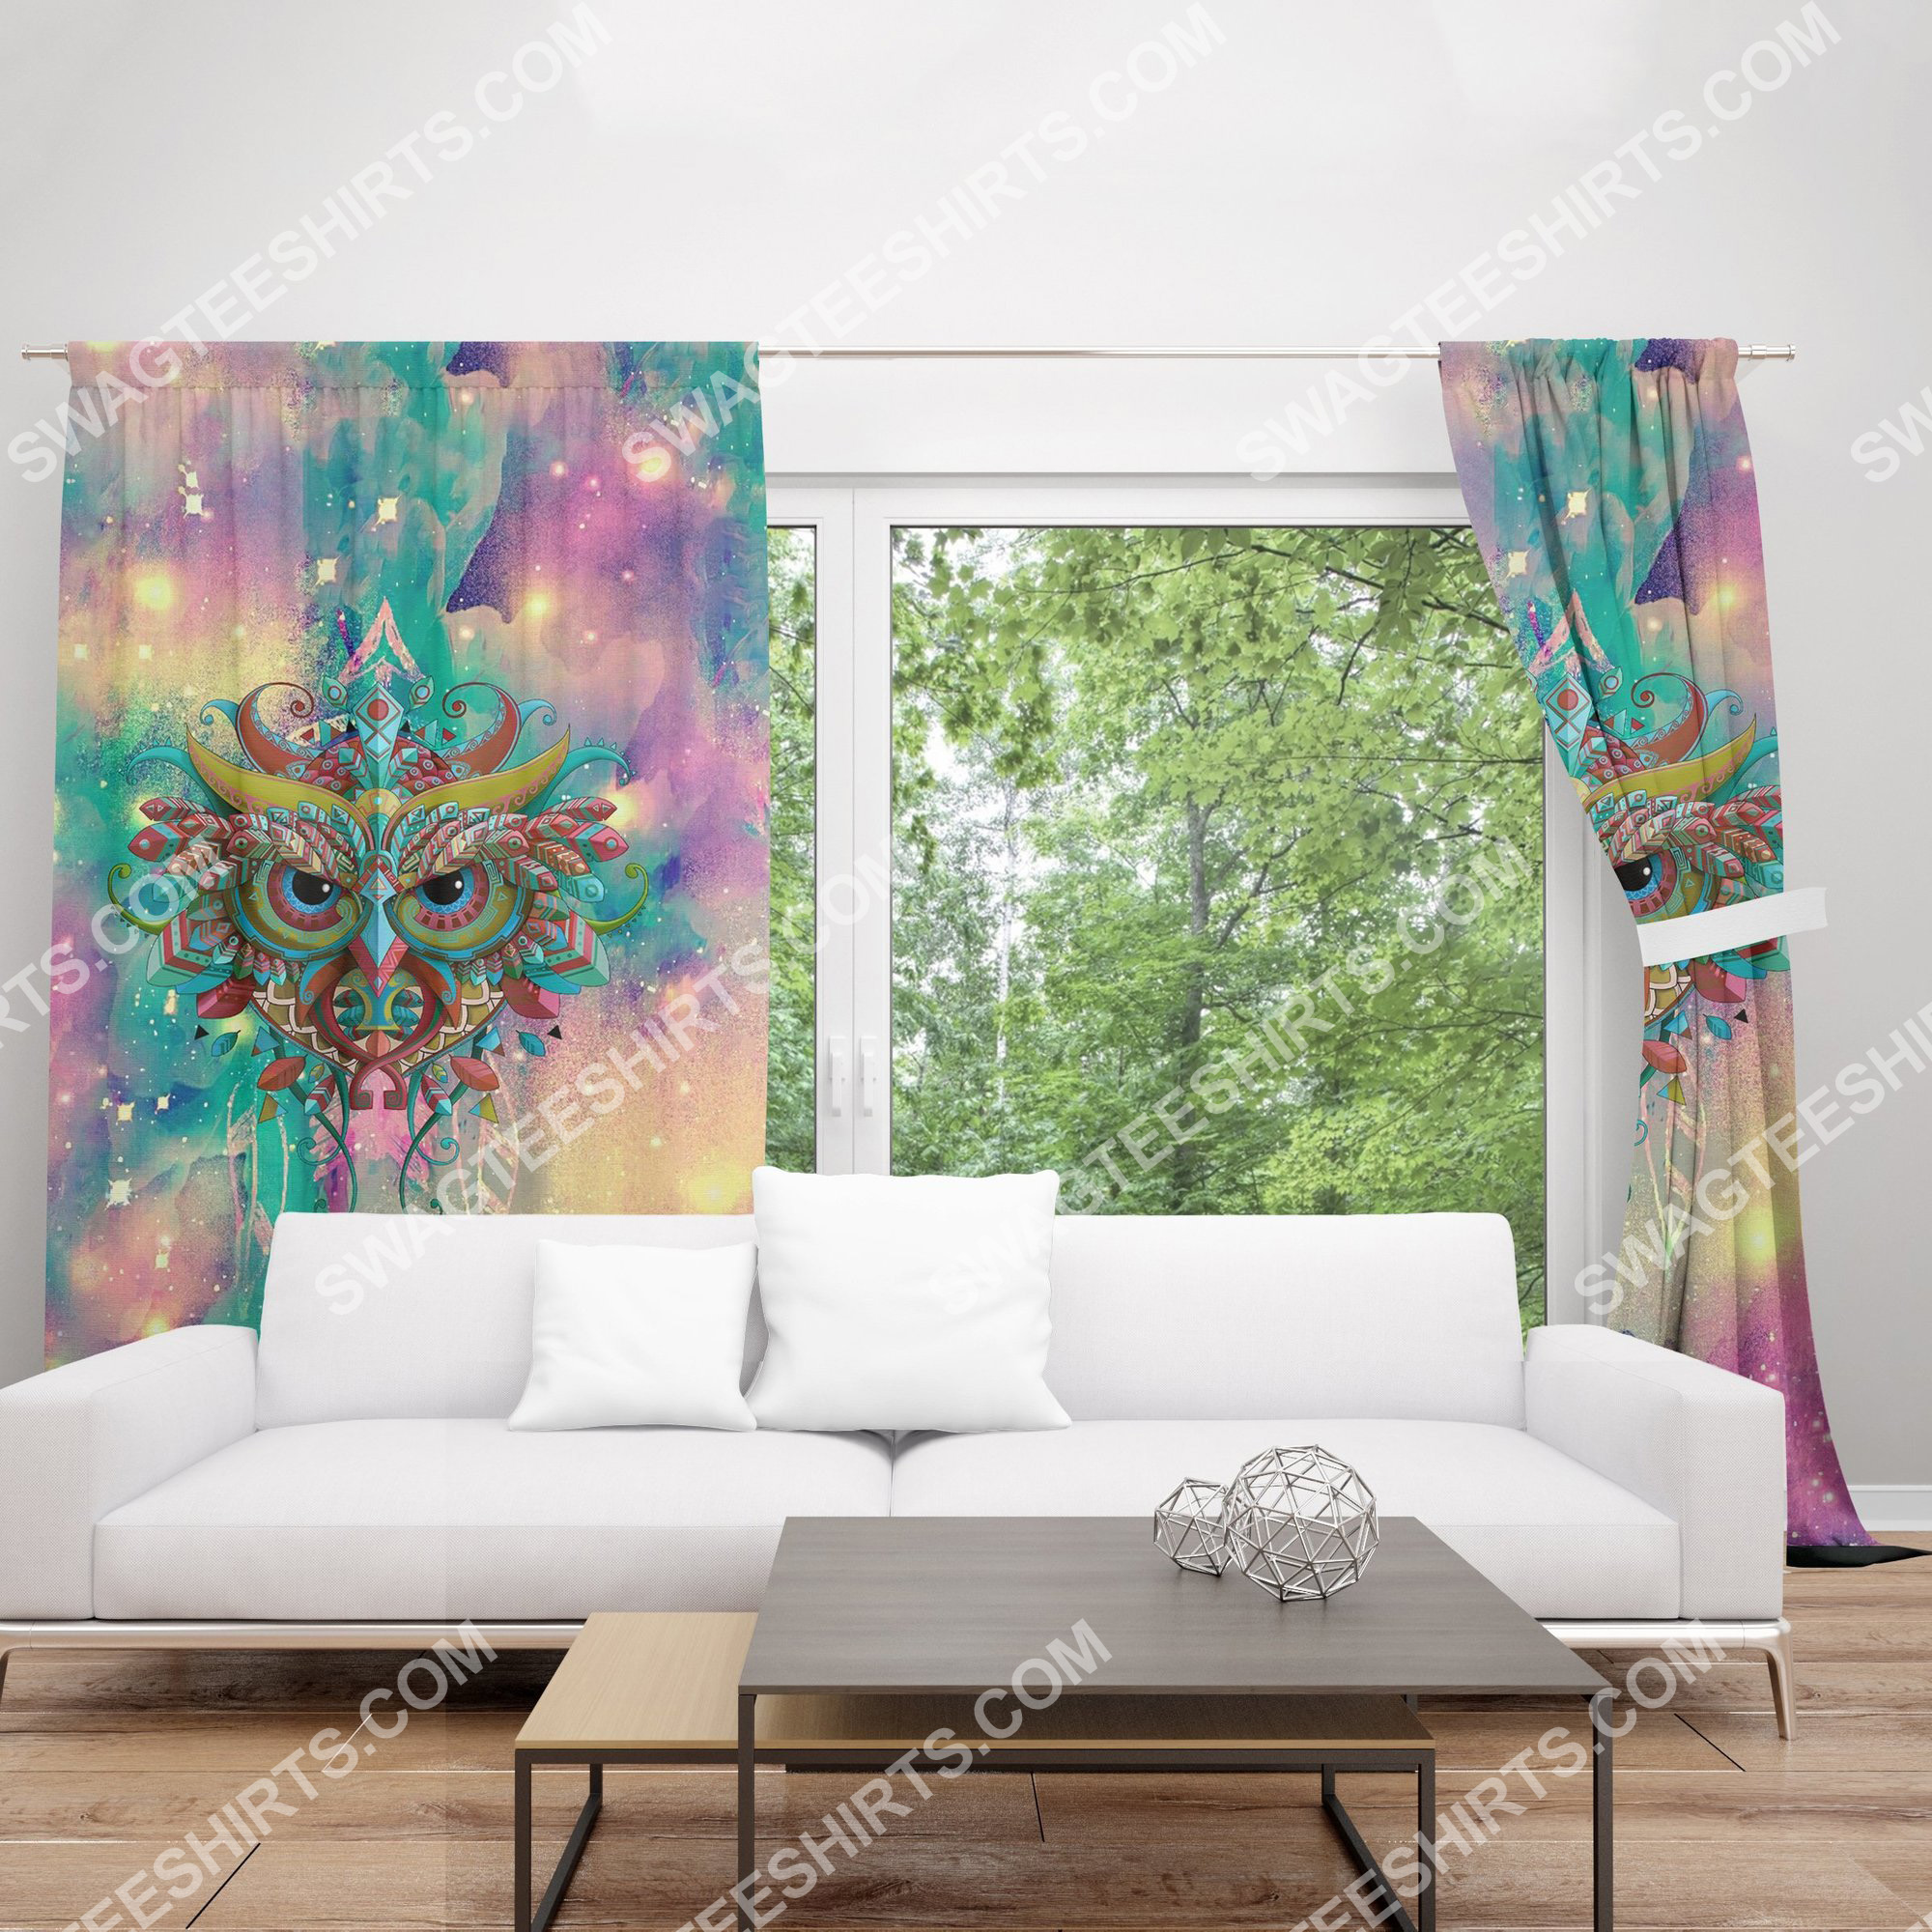 the owl galaxy all over printed window curtains 2(1)the owl galaxy all over printed window curtains 2(1)